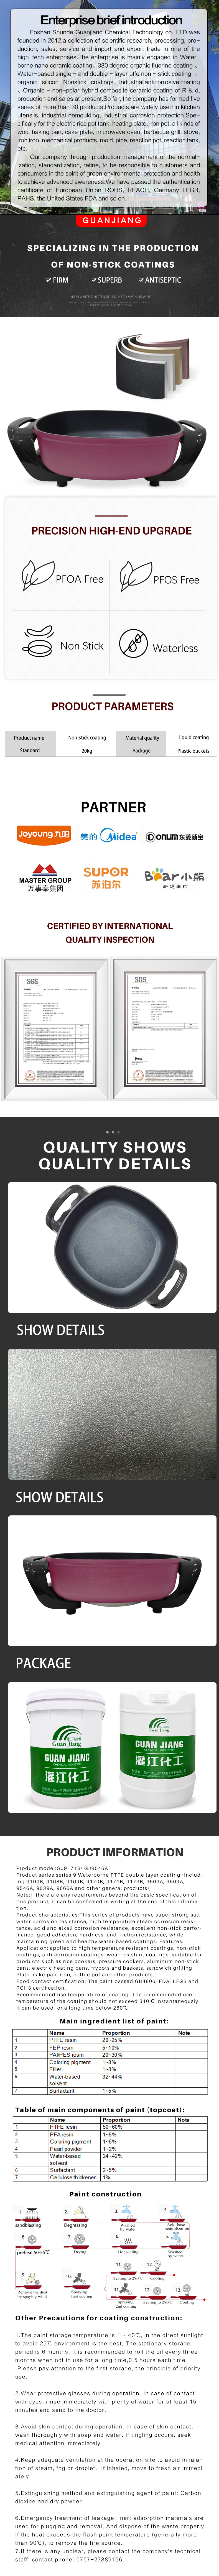 Water based non stick coating marble coating pan non-stick frying pan Cookware PTEF Coating paints